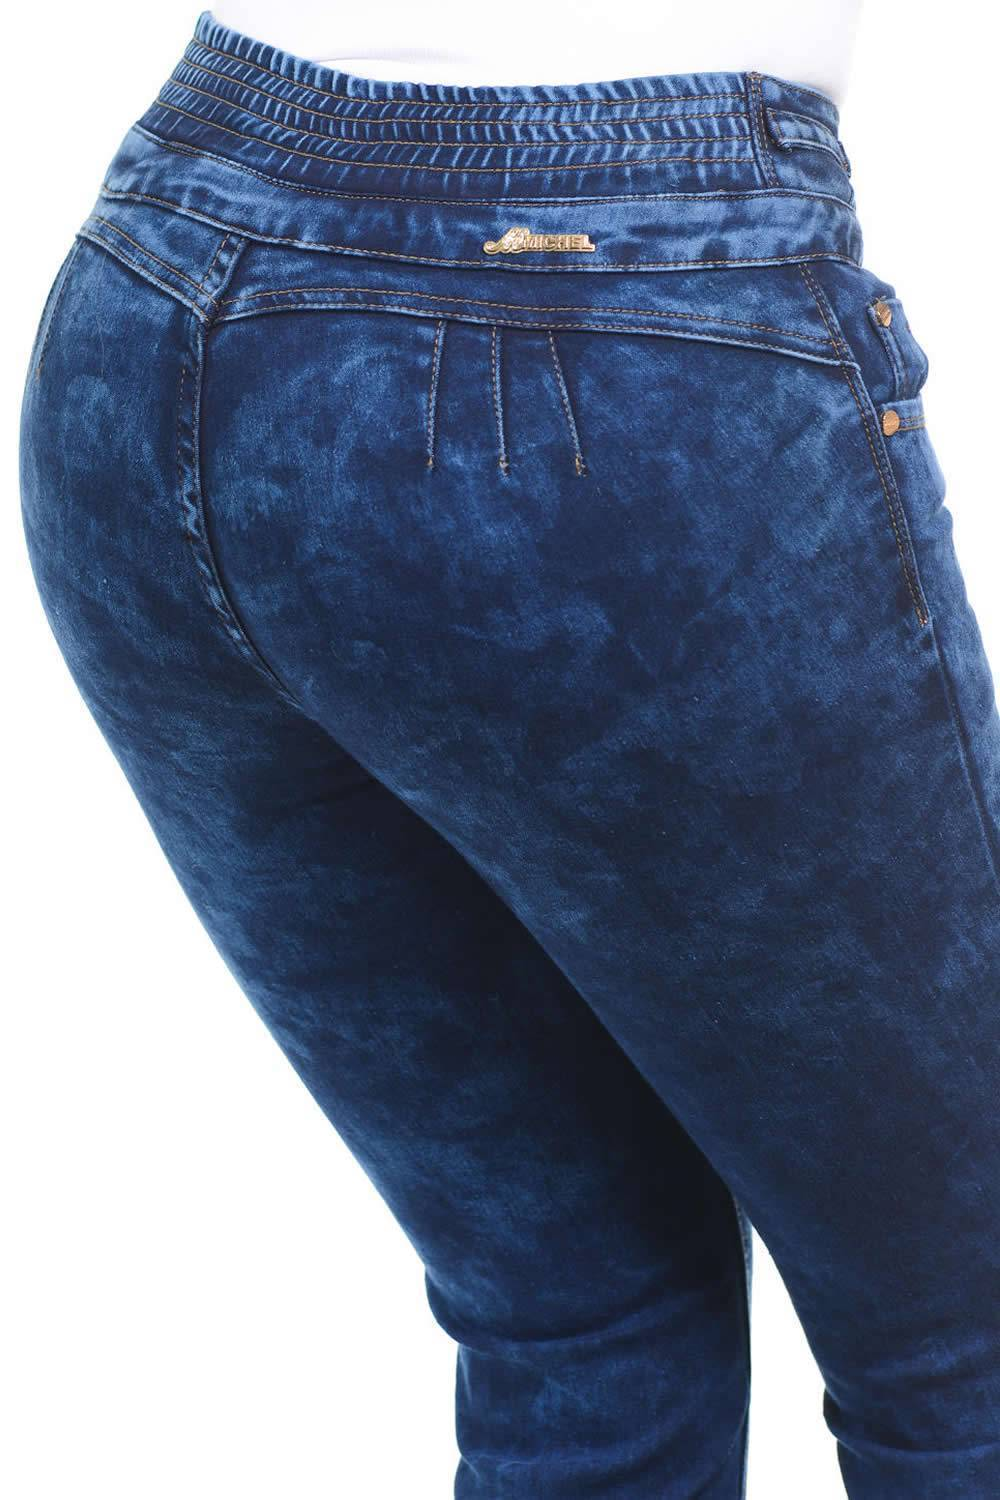 Colombian Design Jean Buttlift Pant Jeans levantacola Skinny Push Up 118